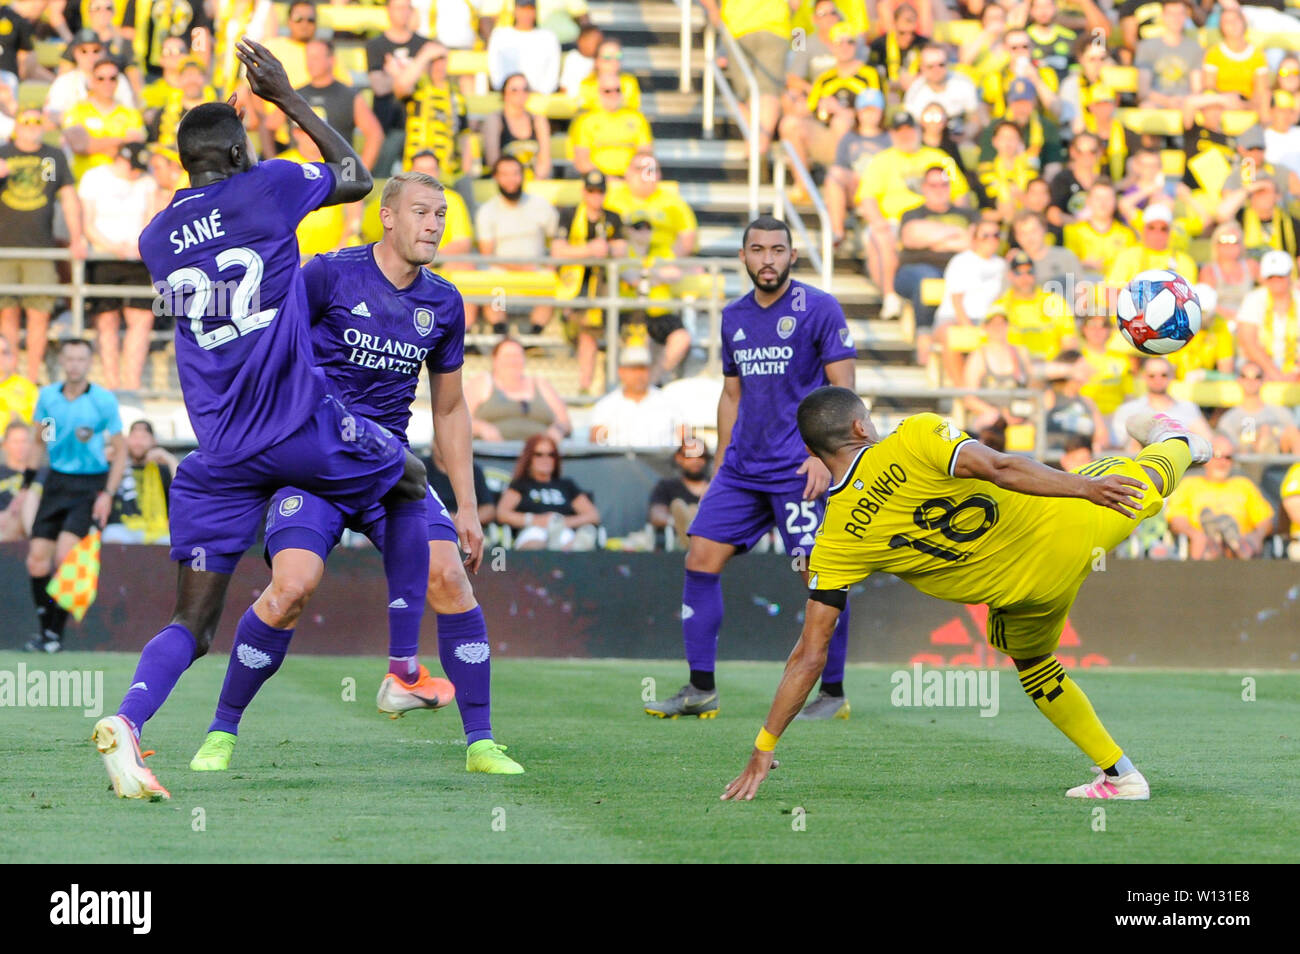 Saturday, June 29, 2019: Columbus Crew SC forward Robinho (18) attempts a bicycle kick while Orlando City defender Lamine Sane (22) protects his face the first half of the match between Orlando City and Columbus Crew SC at MAPFRE Stadium, in Columbus OH. Mandatory Photo Credit: Dorn Byg/Cal Sport Media. Orlando City 1 - Columbus Crew SC 0 after the first half - Stock Image